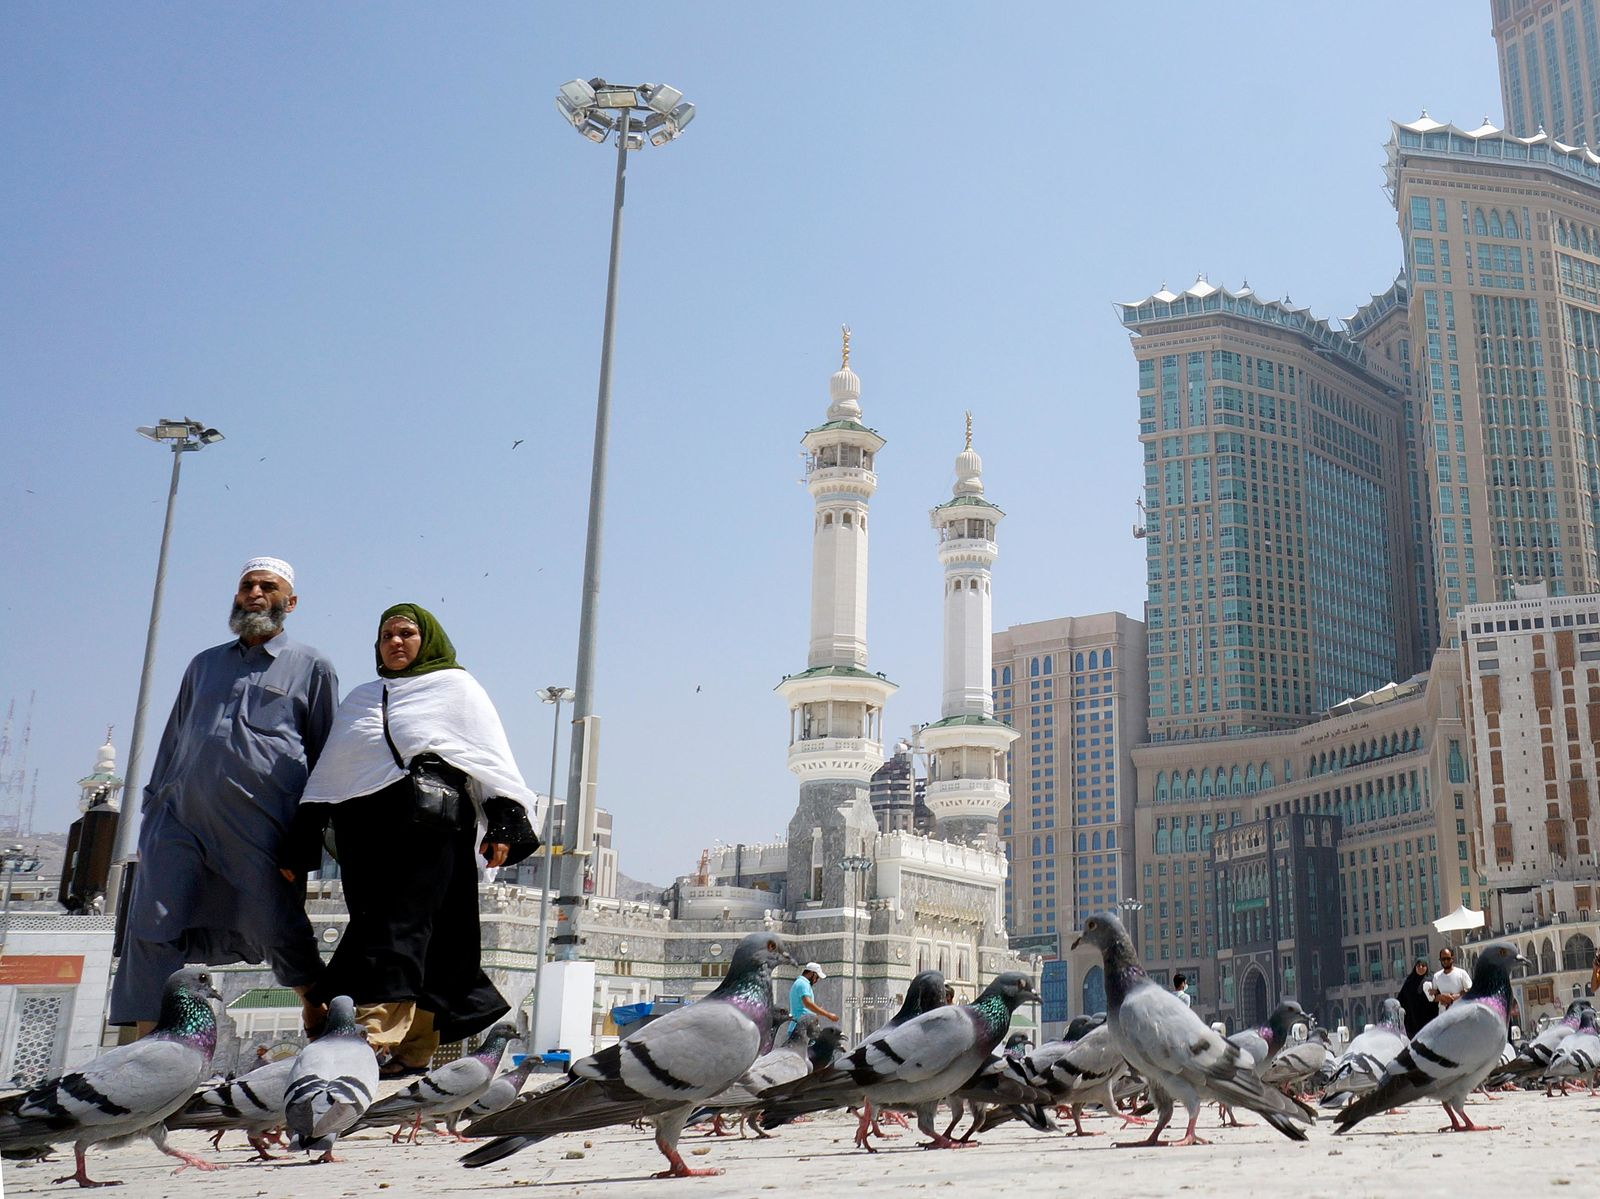 Muslim worshippers walk past pigeons after the noon prayers outside the Grand Mosque, in the Muslim holy city of Mecca, Saudi Arabia, Saturday, March 7, 2020. (AP Photo/Amr Nabil)